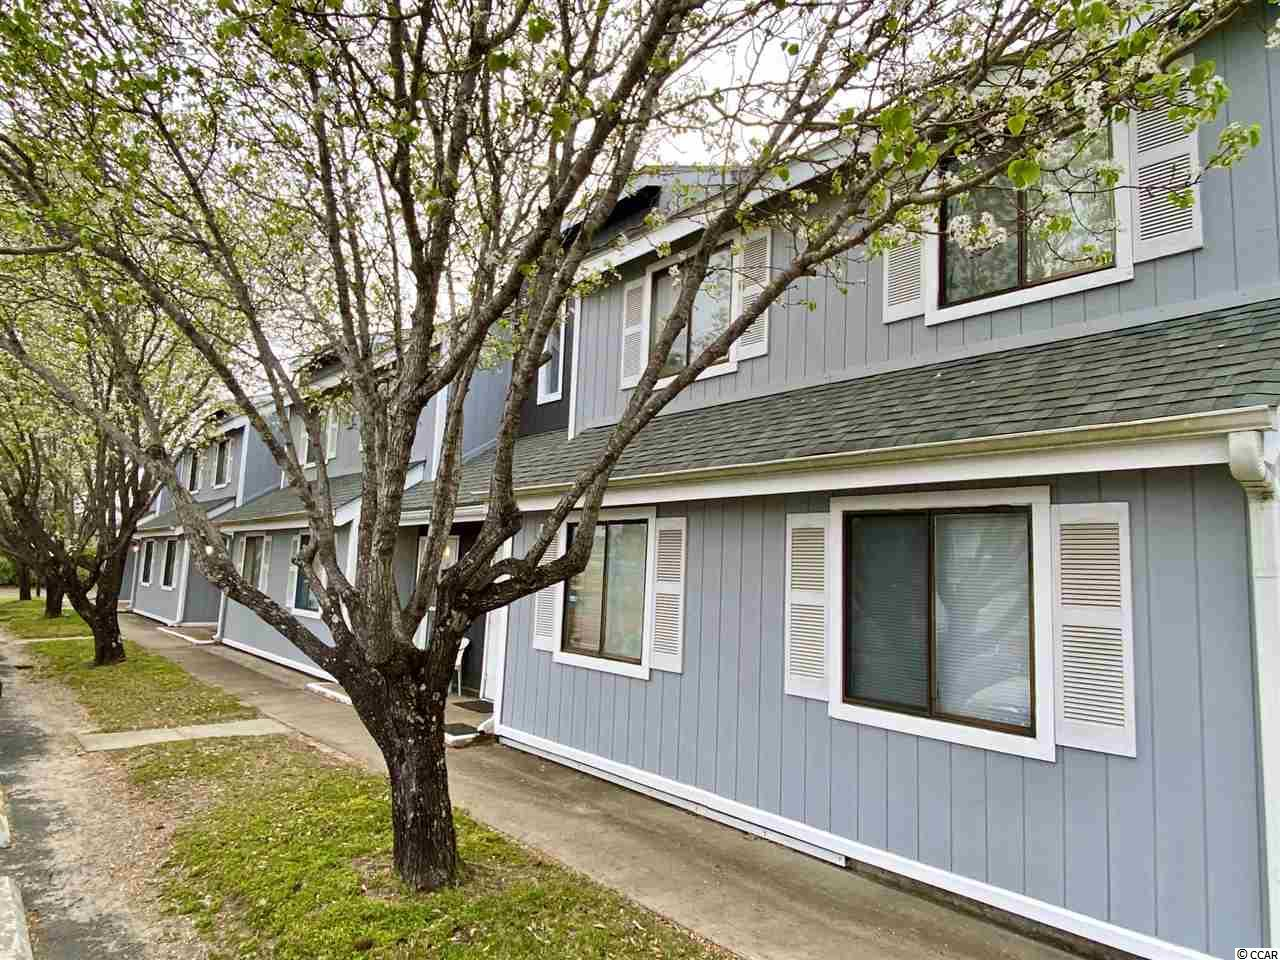 Great opportunity for the savvy investor. Ground floor 2 BR 1.5 BA with screened porch, located by pool, close proximity to hospital, schools and the beach. Needs new carpet and paint, but with a little tlc this property would make a great home or rental investment. Listing agent is member of Llc that owns this unit.